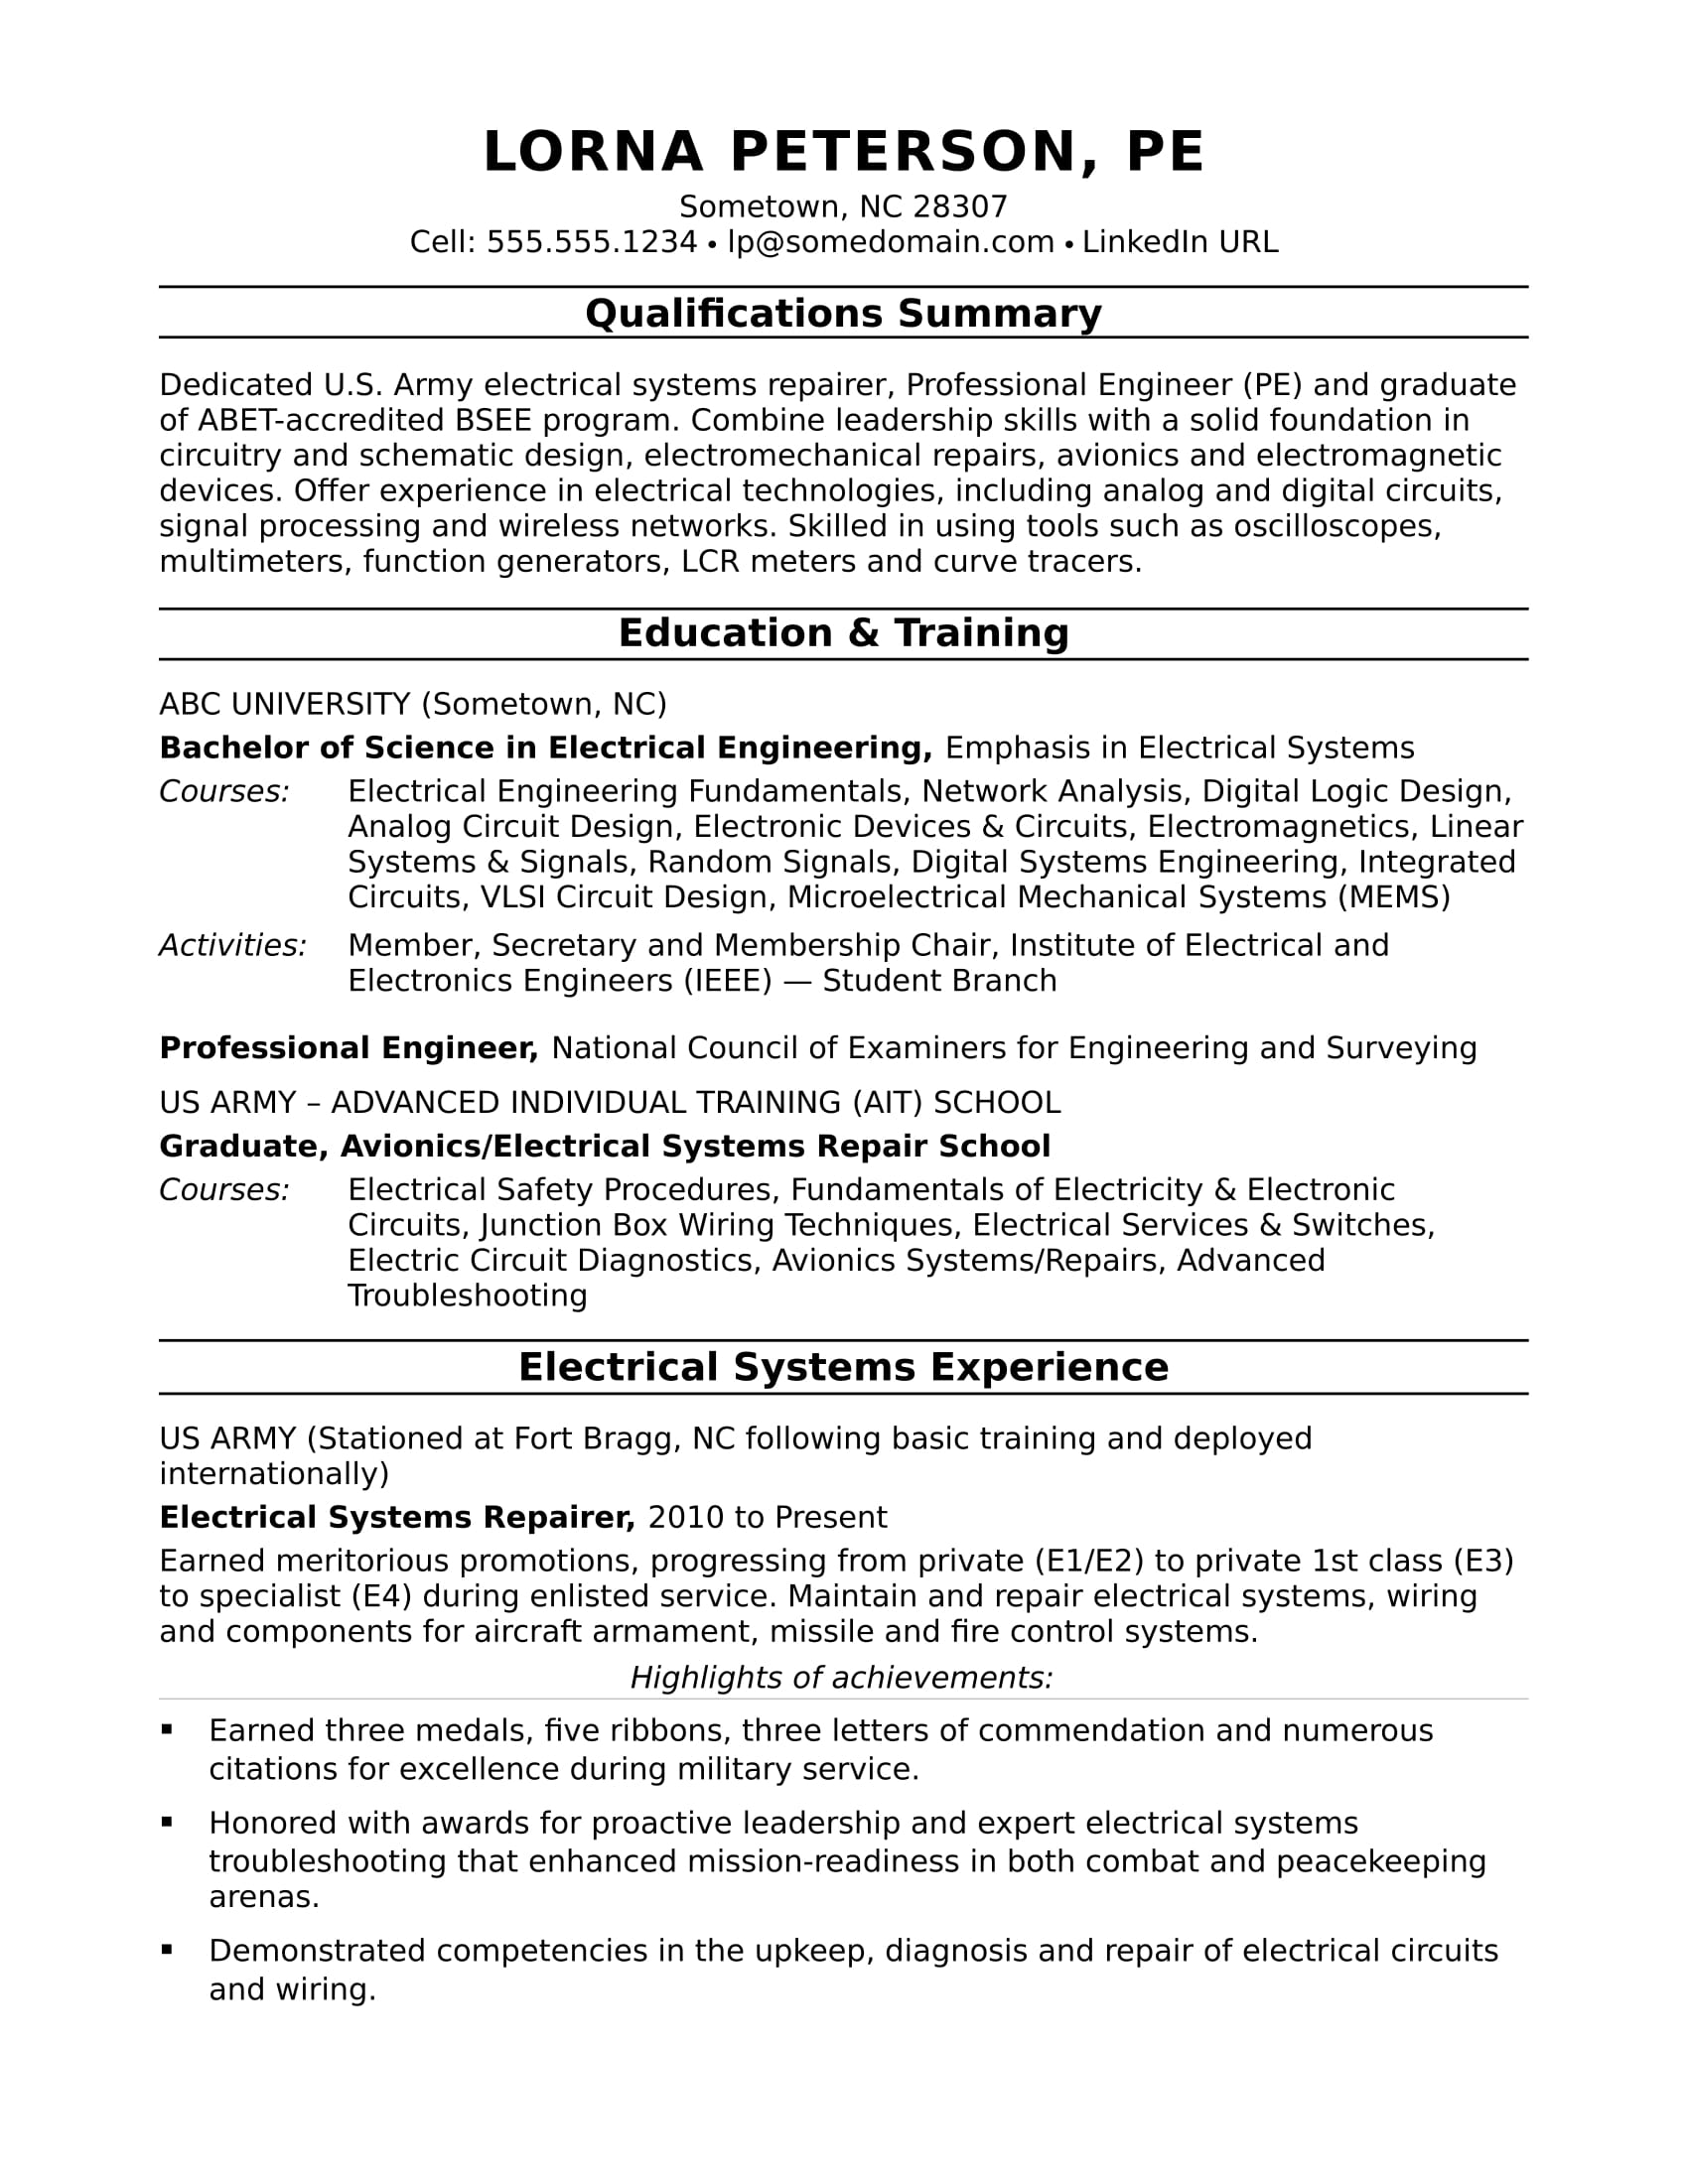 sample resume for midlevel electrical engineer monster experienced electronics entry Resume Sample Resume For Experienced Electronics Engineer